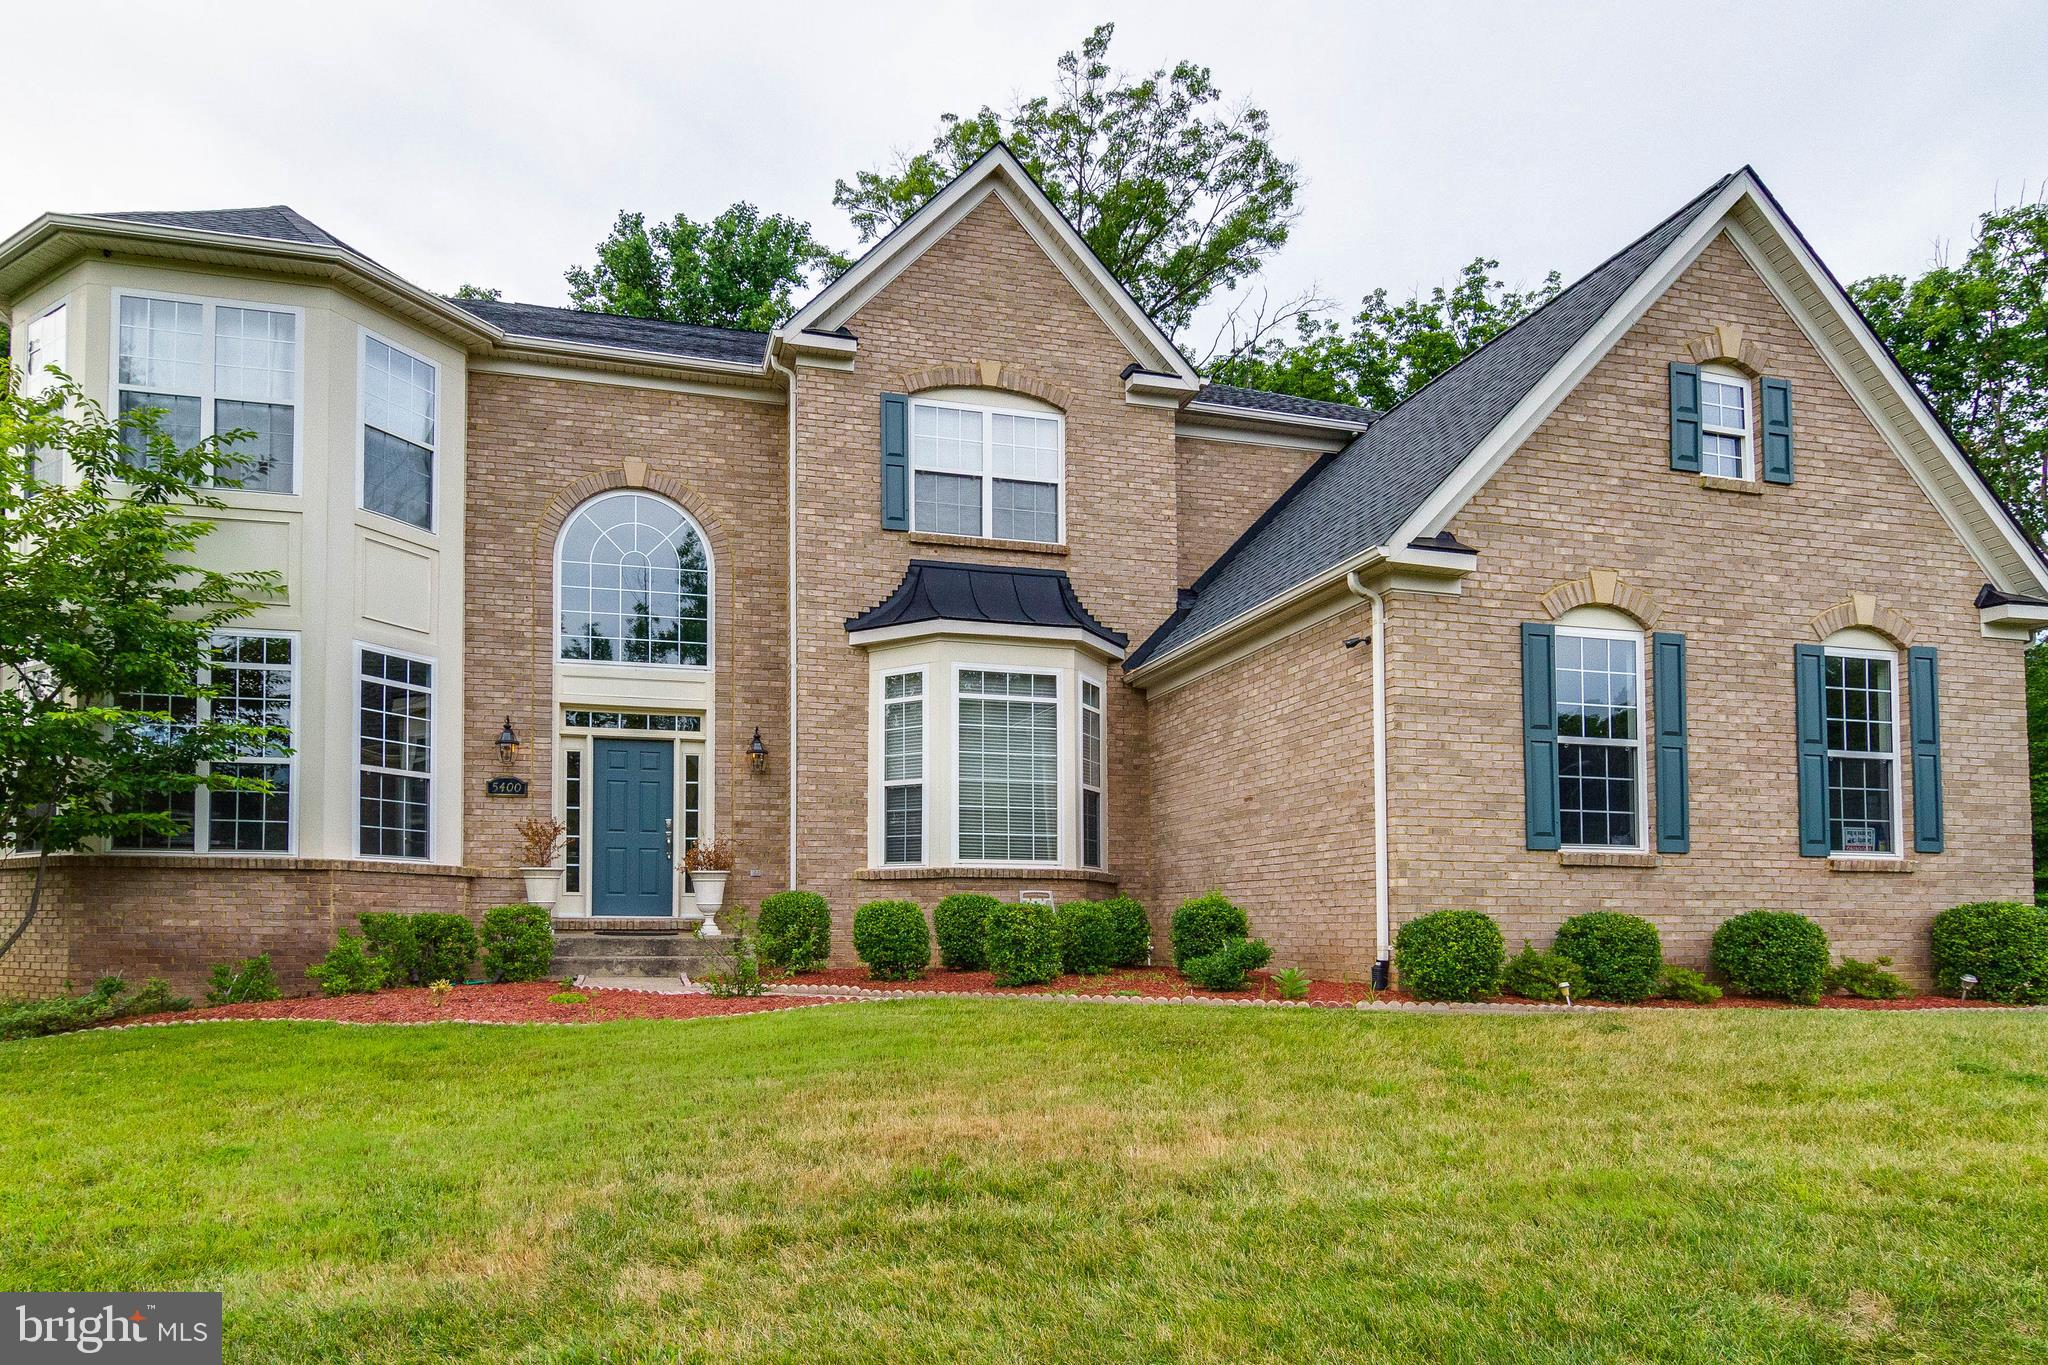 Former Model home sold at $1.2M**Estate home with all the upgrades**New Roof with lifetime warranty**Huge Deck built 5 years ago**Fully finished basement with Wet bar**3 Fireplaces**Grand 2 story family room is the center point of this Opulent home**Gourmet Kitchen is a chefs delight**Sunroom with tons of light**Driveway expanded two years ago that can easily hold 10 plus cars**Owner is licensed agent**